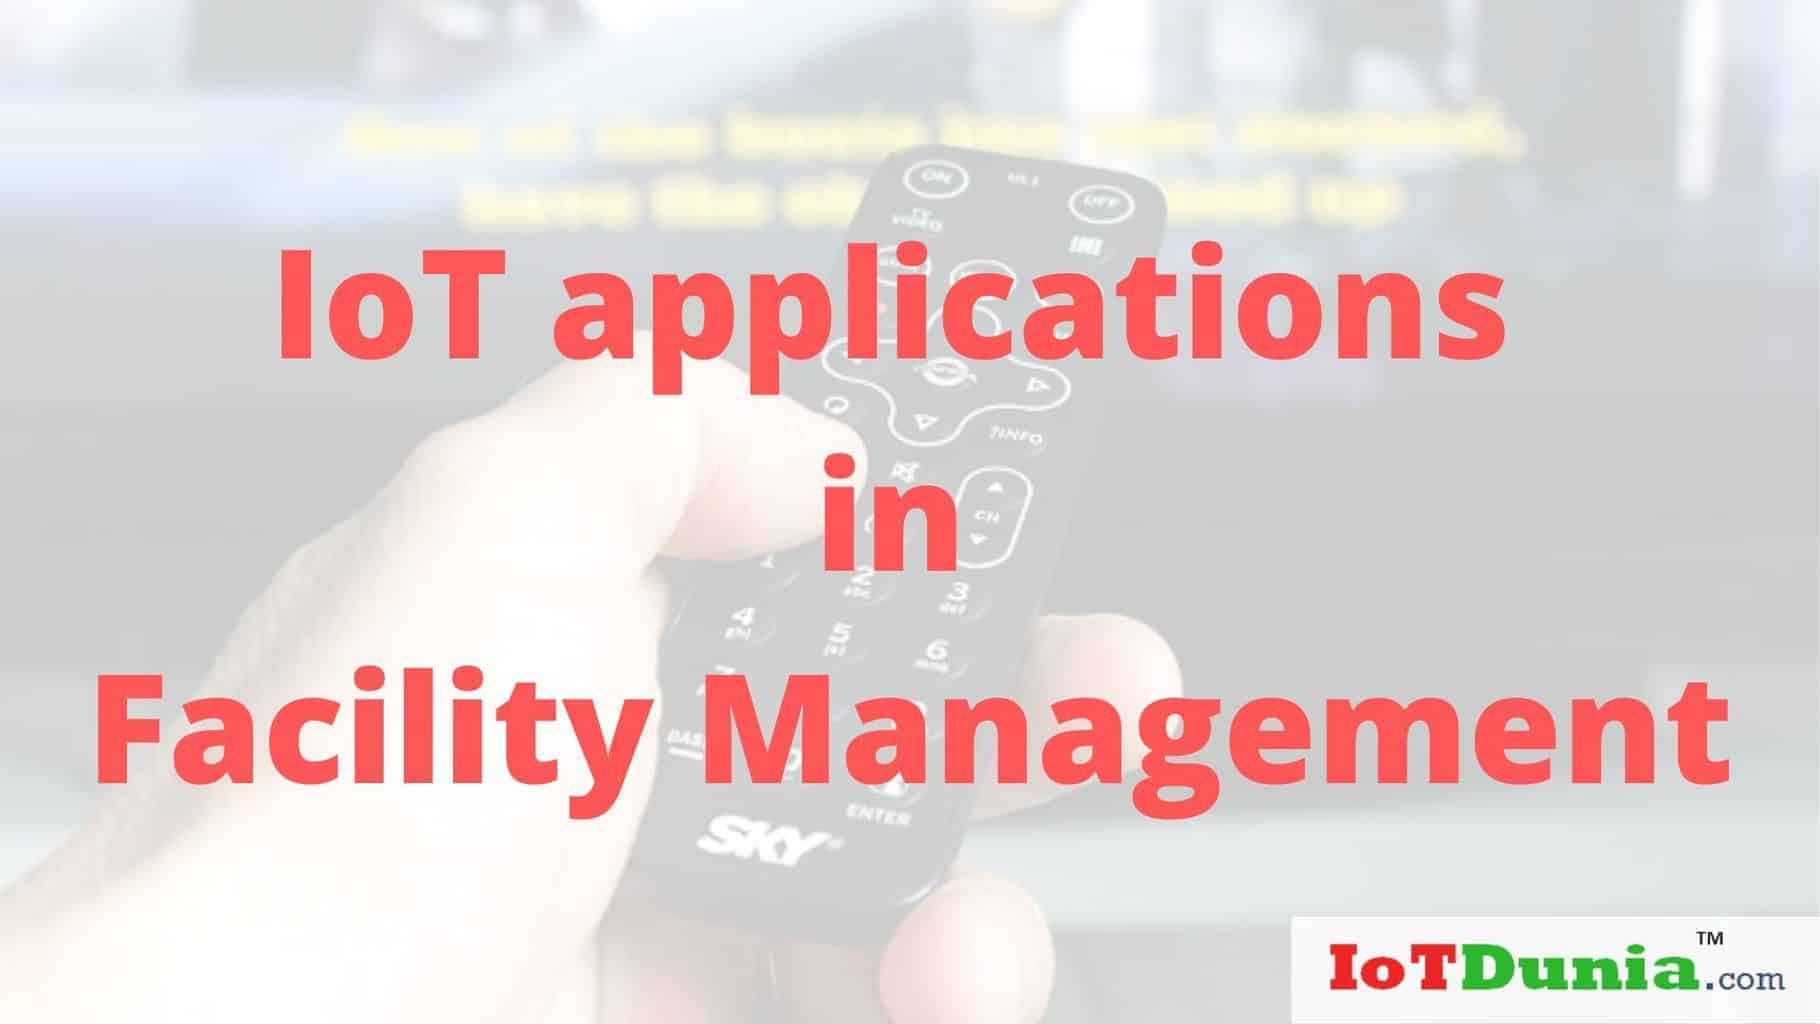 IoT applications in Facility Management